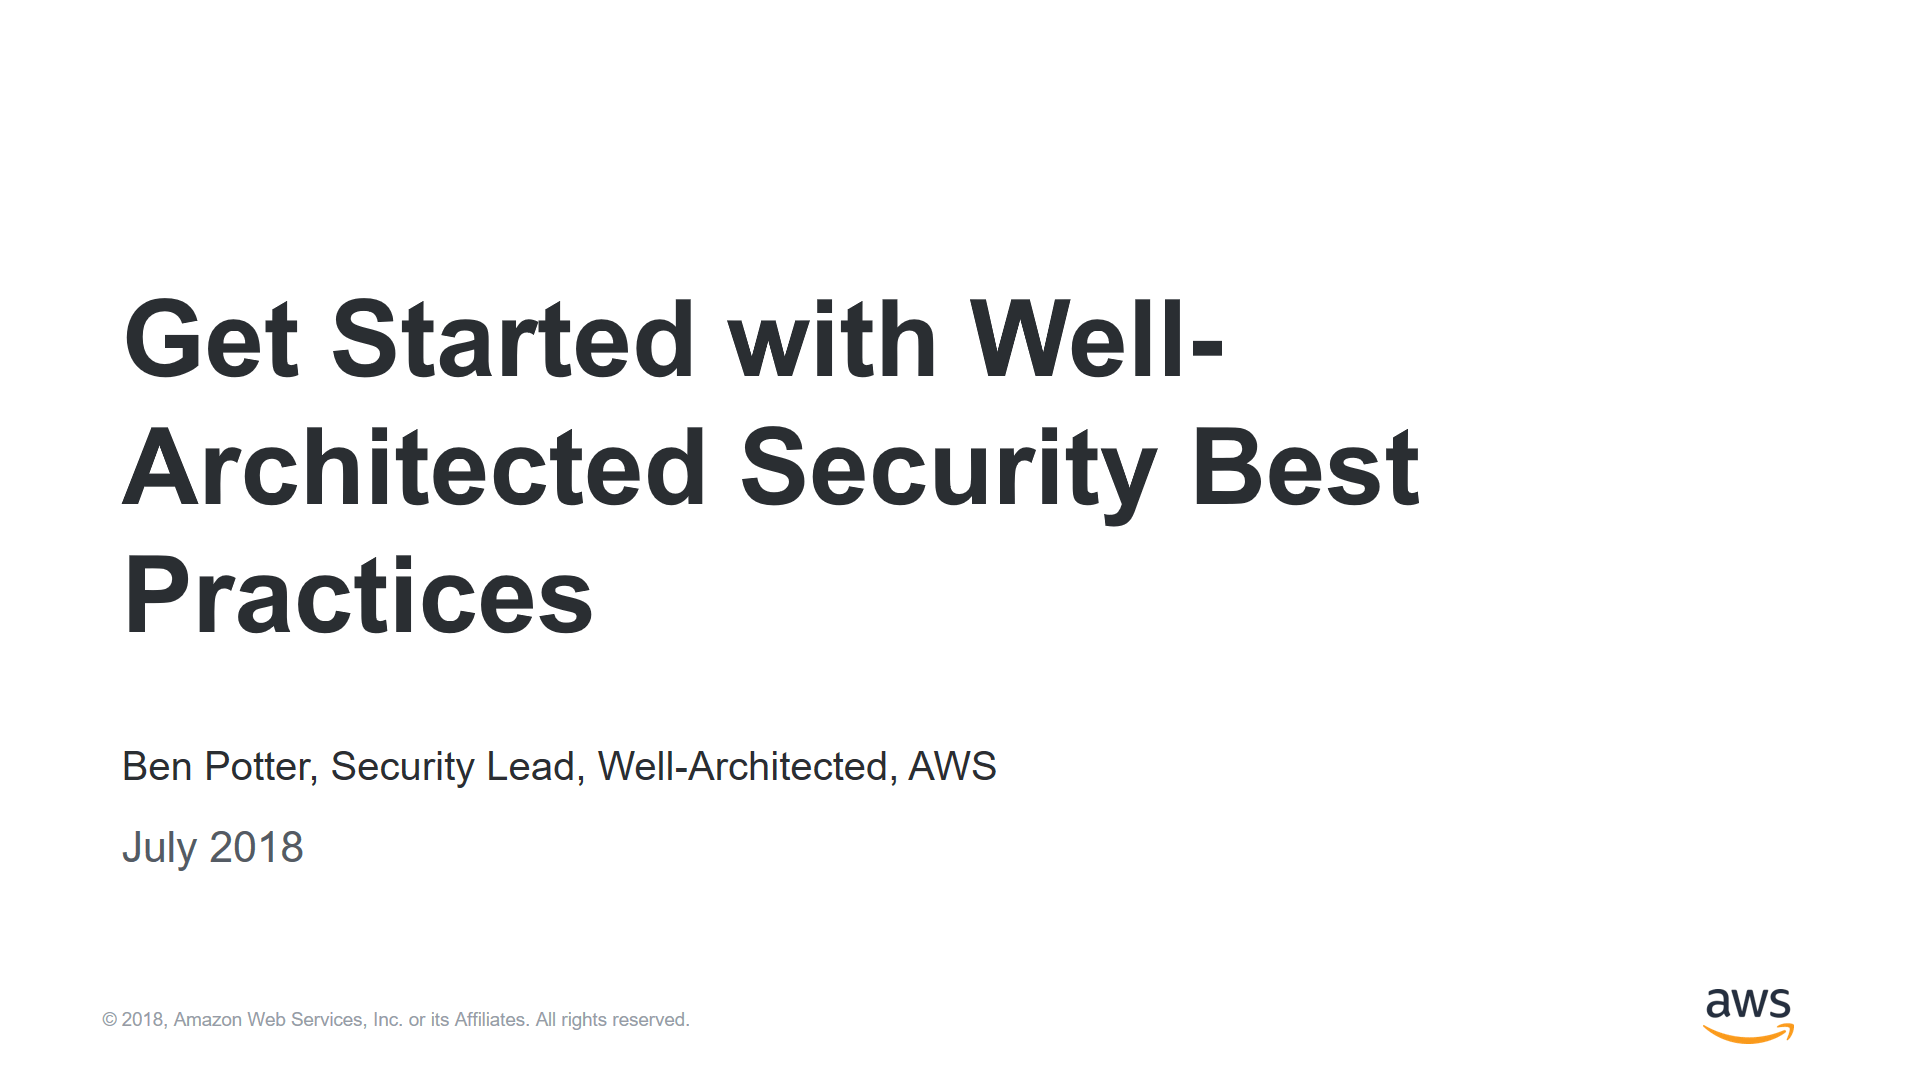 Get Started with Well-Architected Security Best Practices